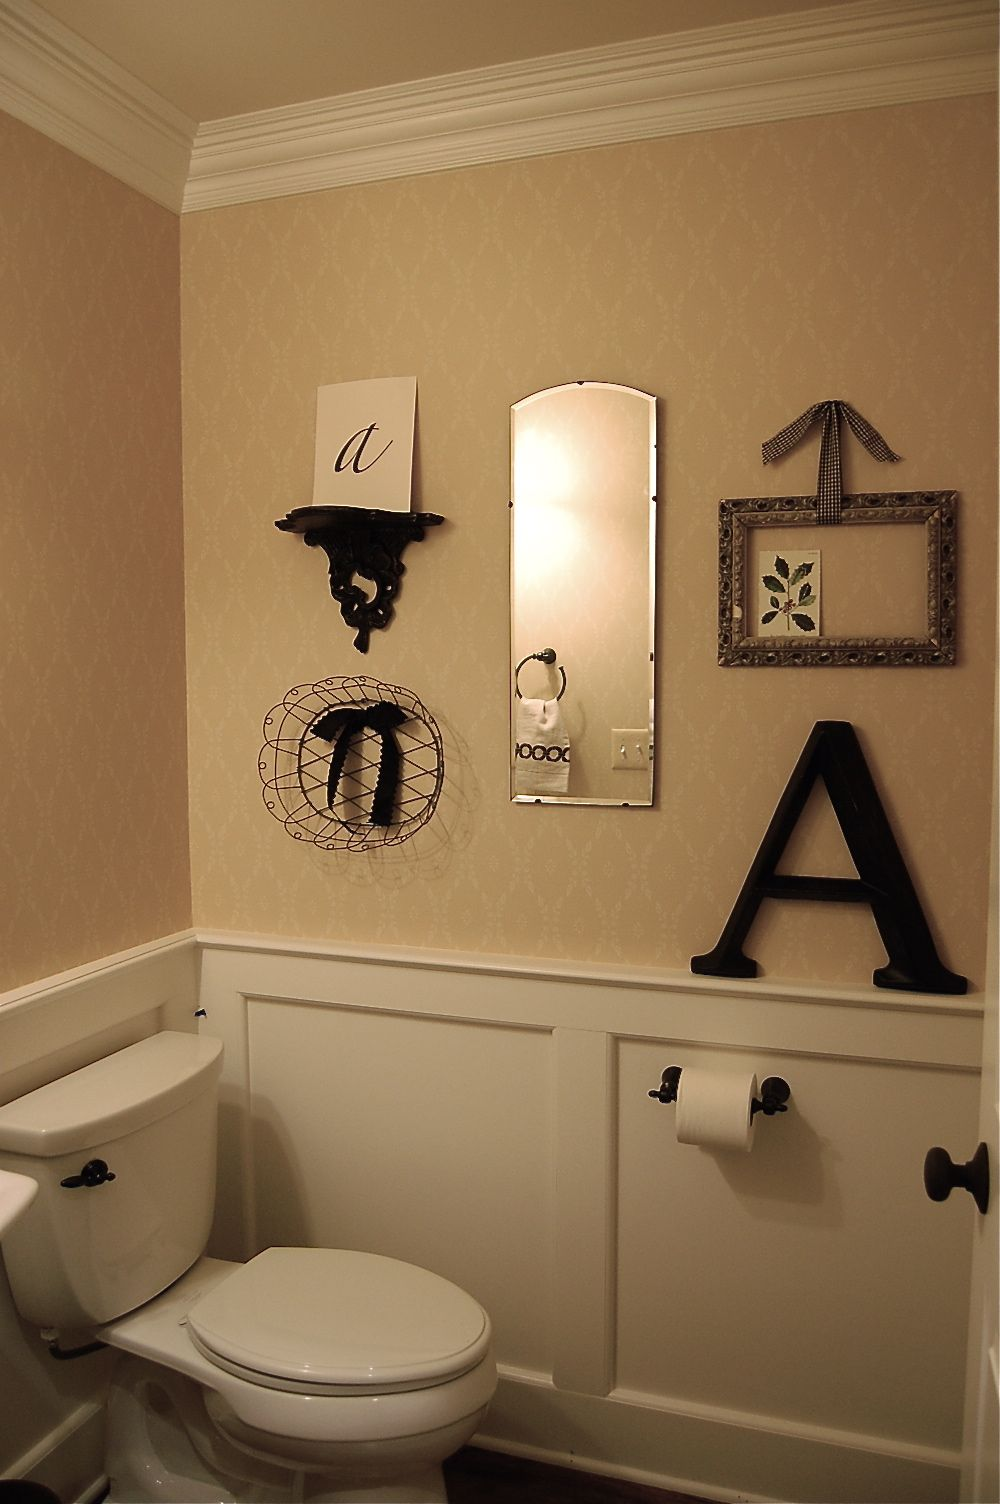 Way Cute Idea This With G Instead Of A S May Be Are Spare Bathroom Or Half Bath Decor When We Move